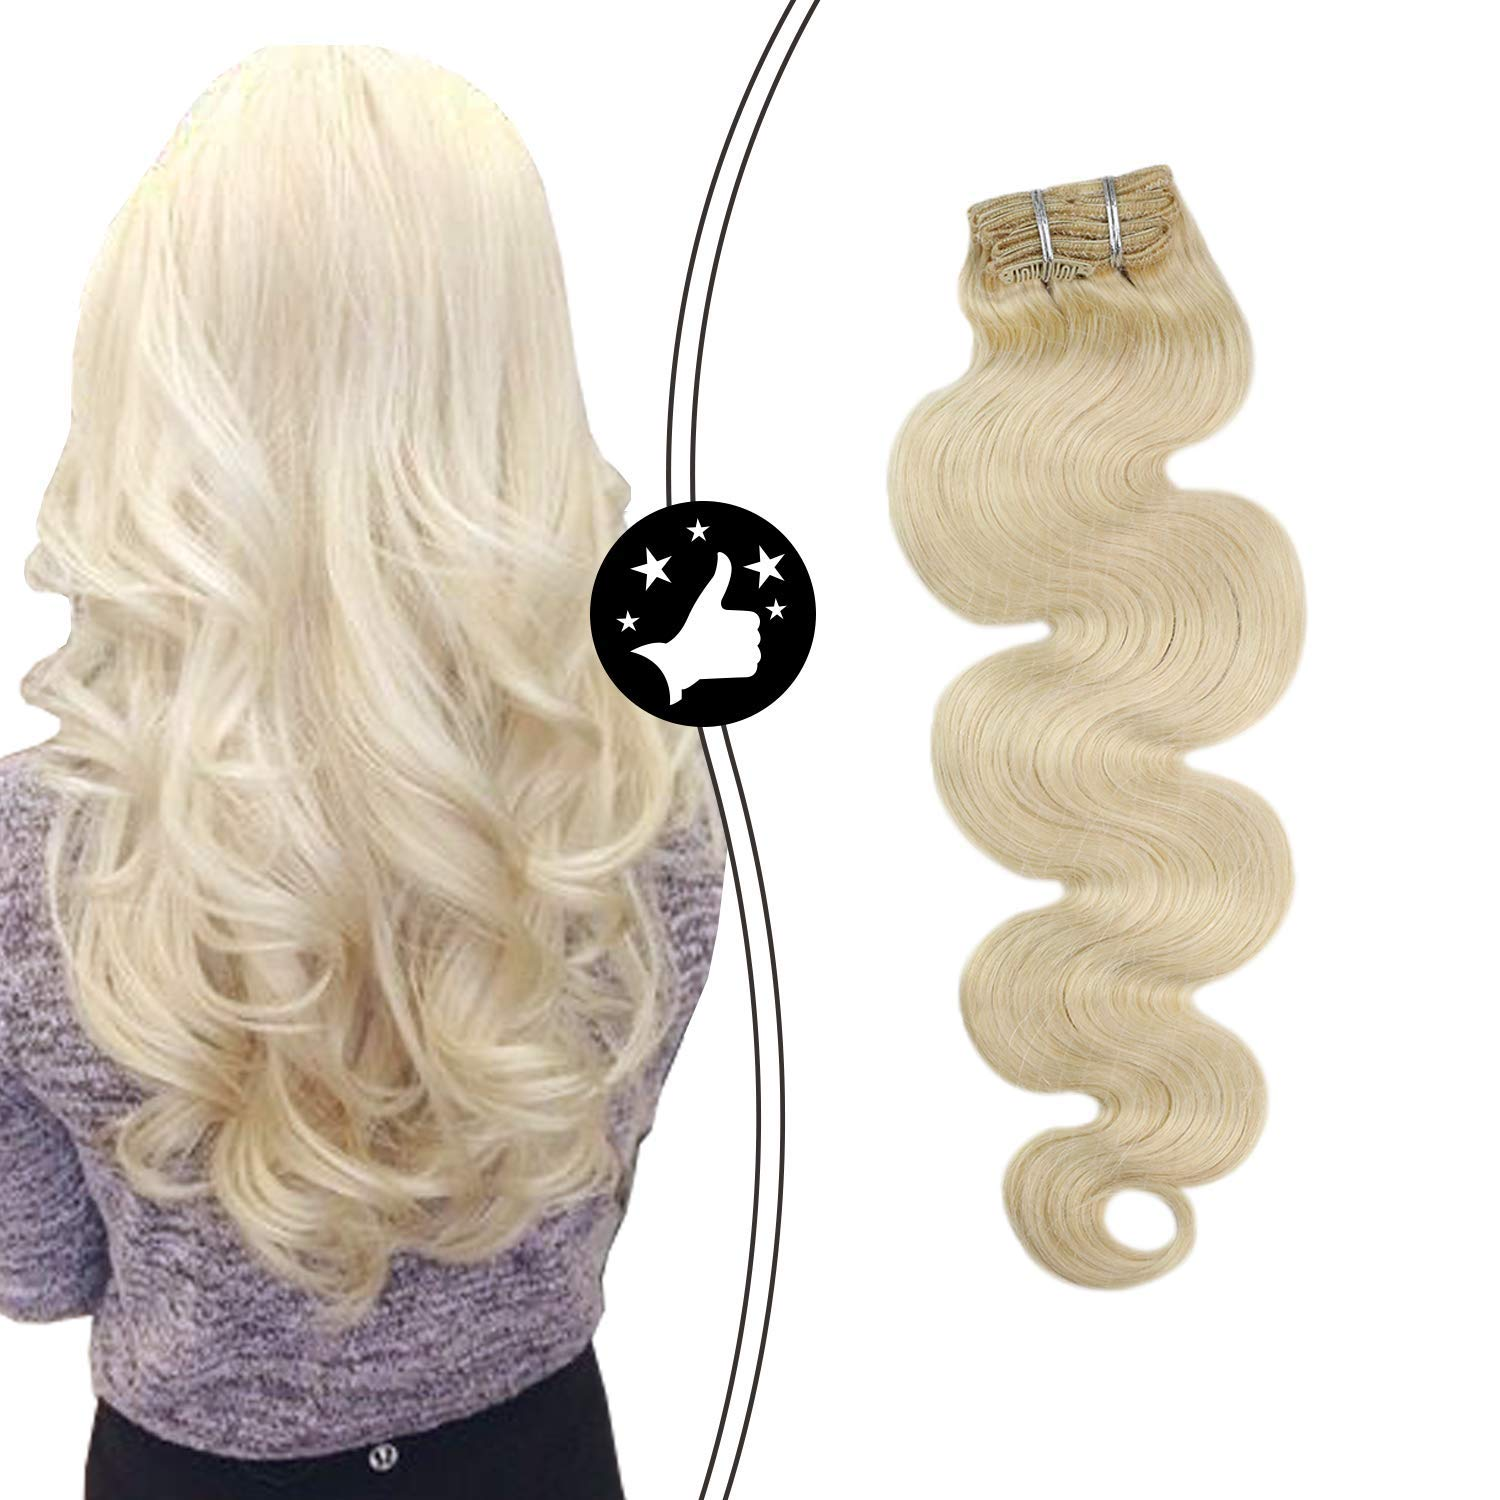 Moresoo Real Hair Extensions Clip Human in Blonde Exte Bombing free shipping Direct sale of manufacturer